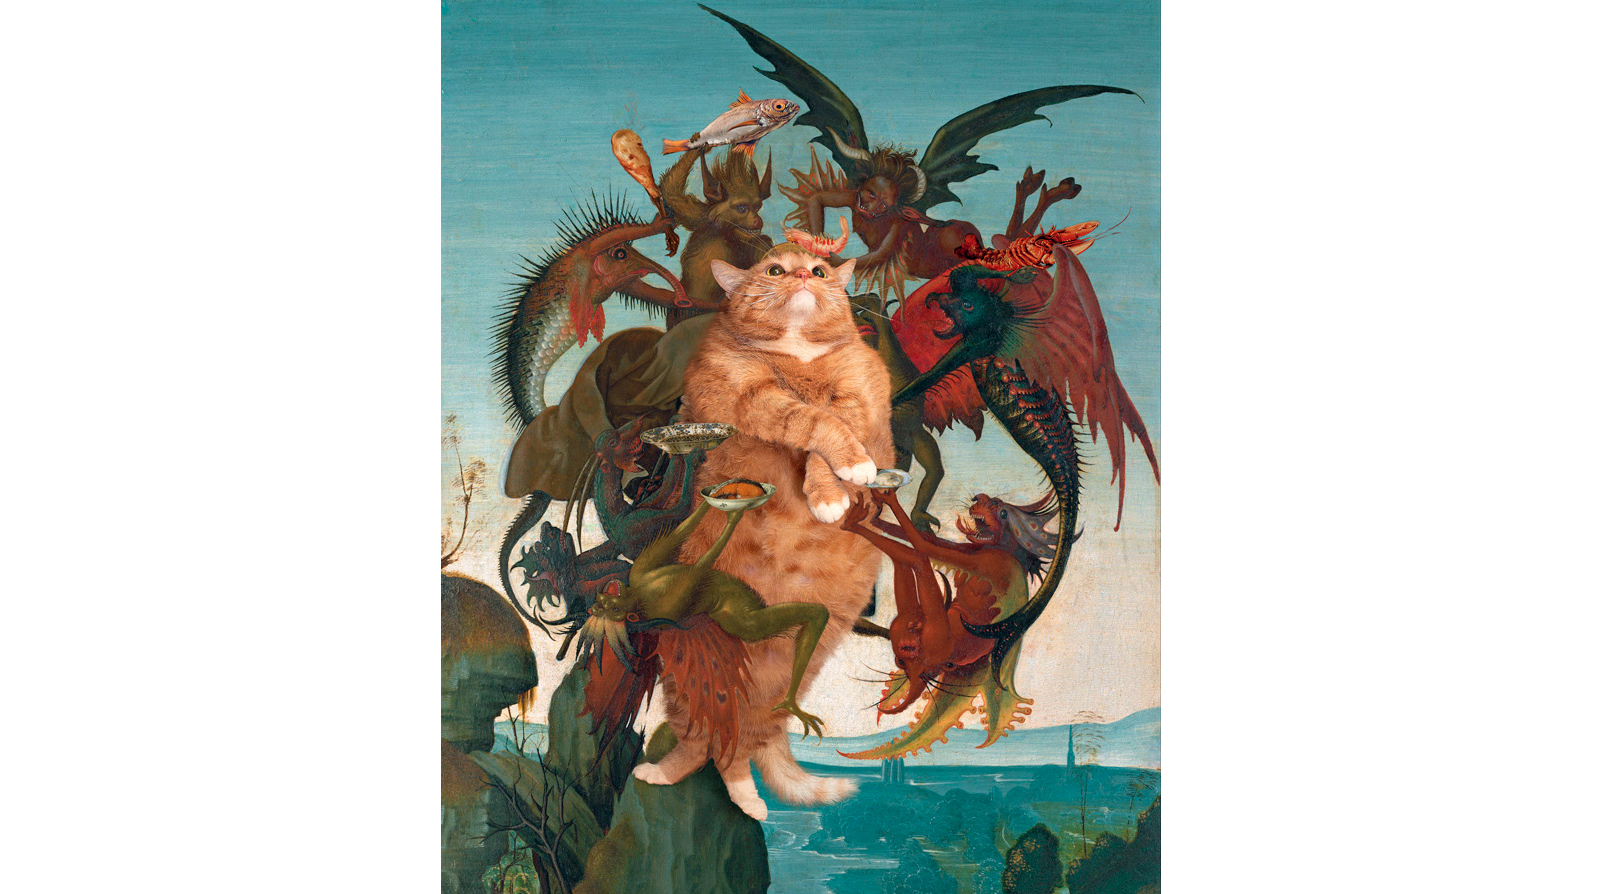 Michelangelo. The Temptation of the Fat Cat